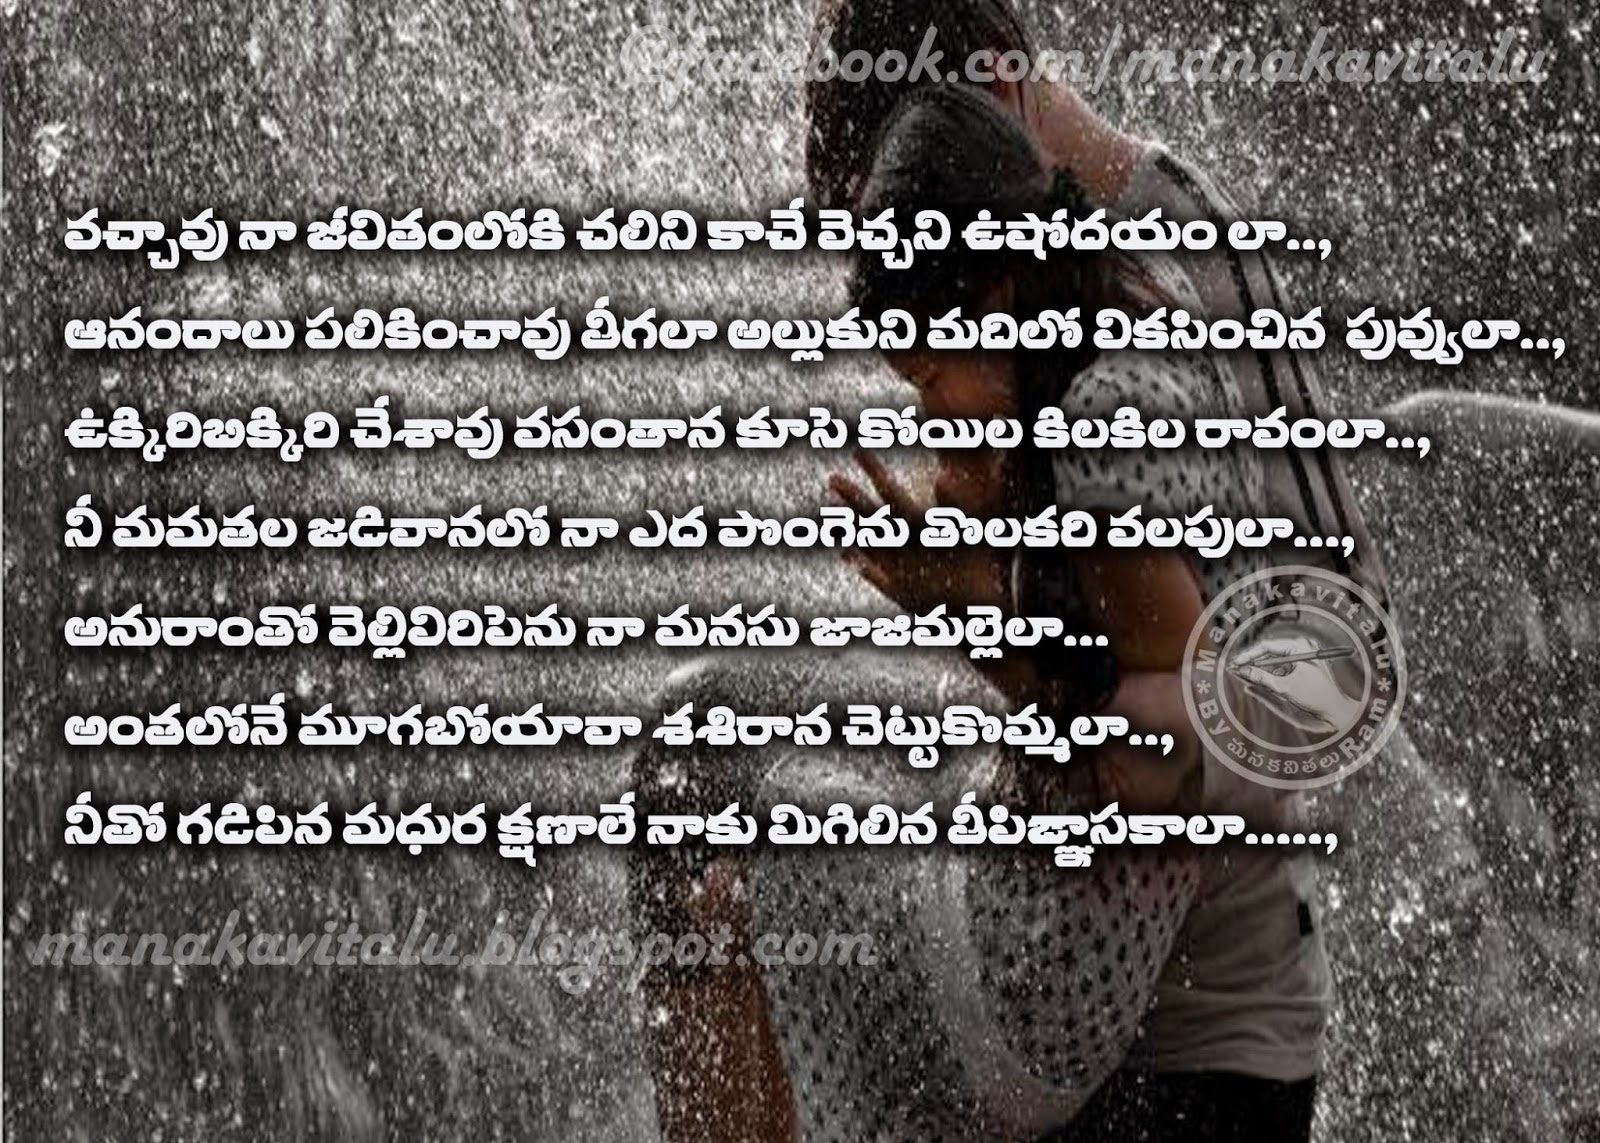 edited photos images on Theepi gnapakam,love,valapu,madhura xanam,kavitha,kaavyam,poitrey,poem in telugu